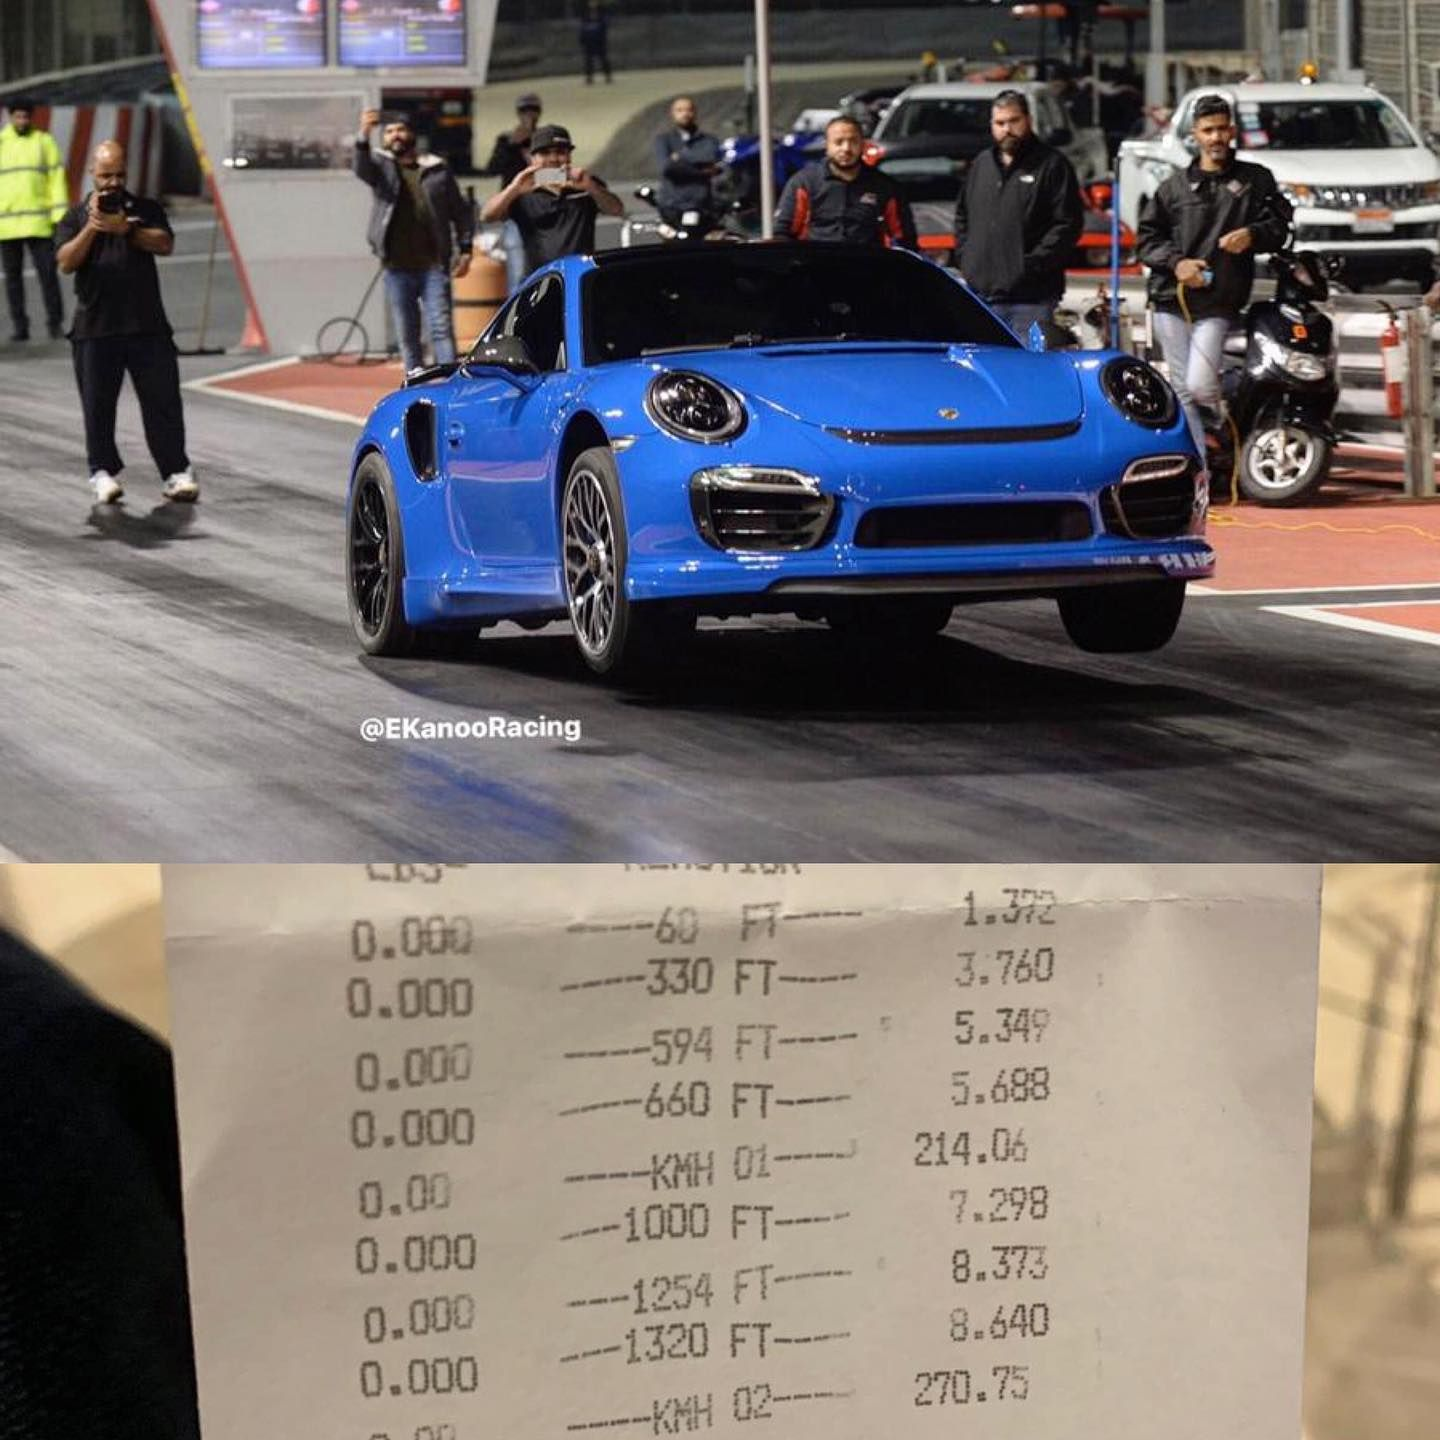 Watch This Porsche 911 Turbo Pull Wheelies at the Drag Strip